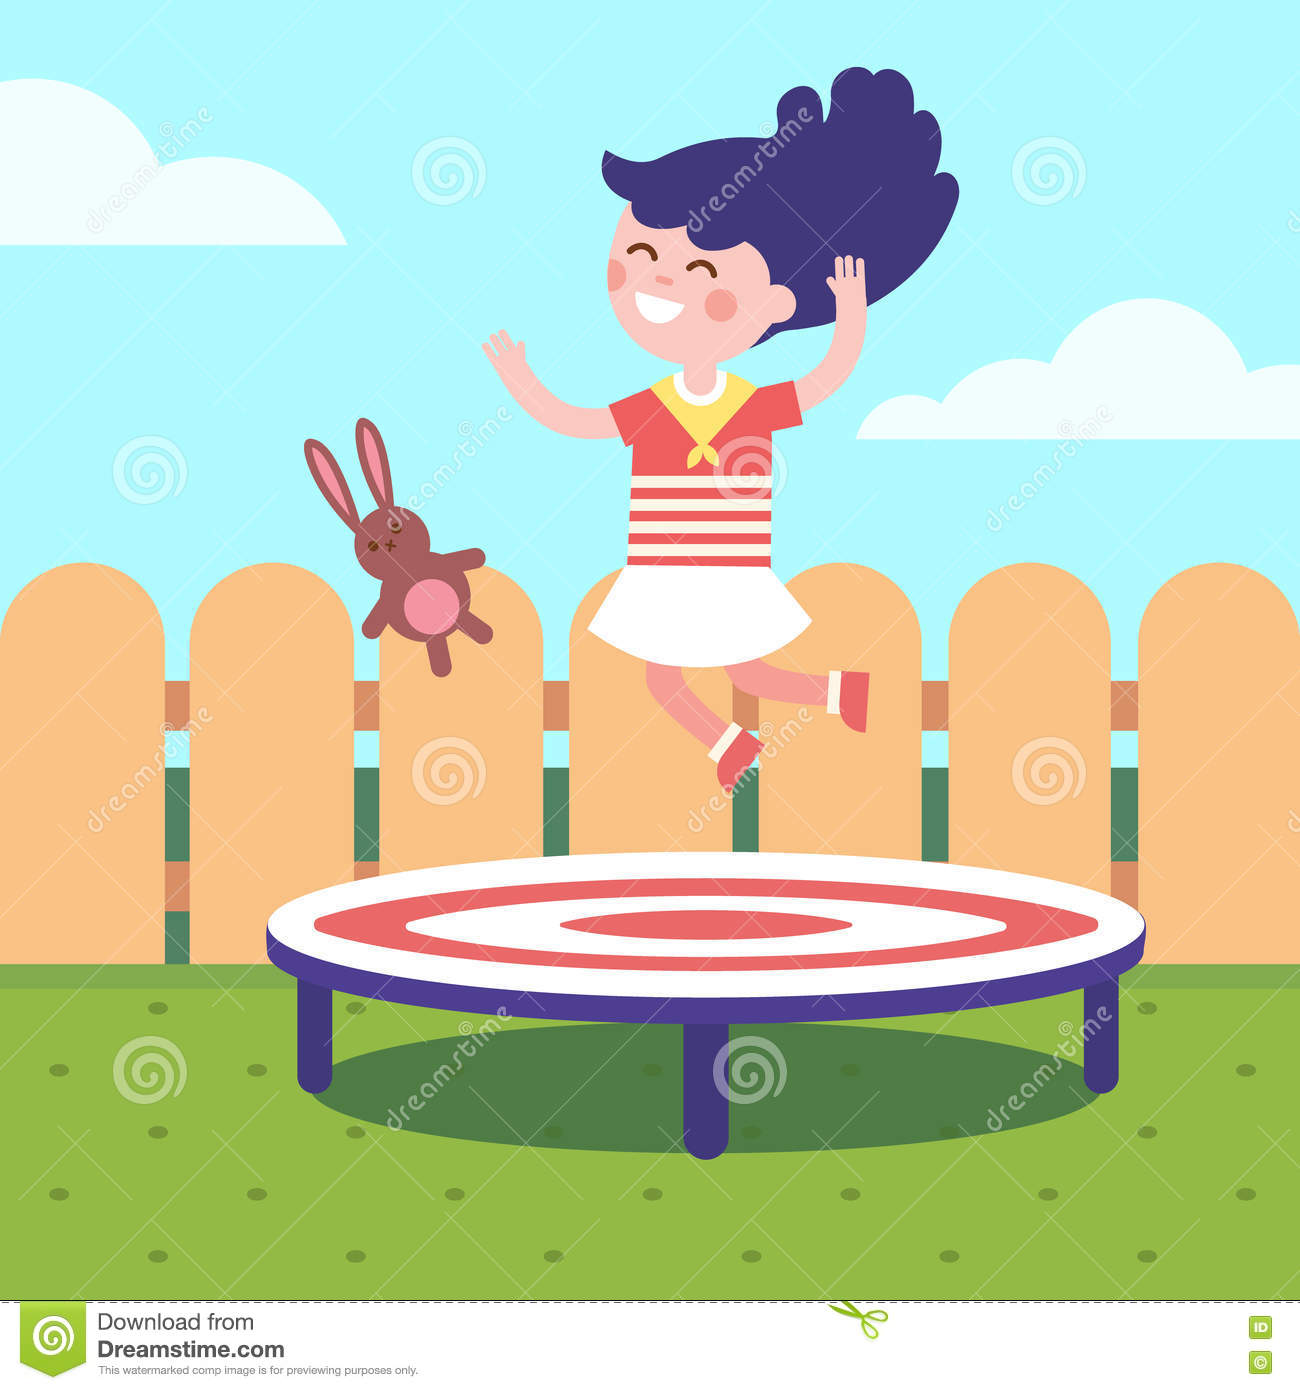 hight resolution of girl jumping on a trampoline at the backyard childhood joy and happiness modern flat vector illustration clipart